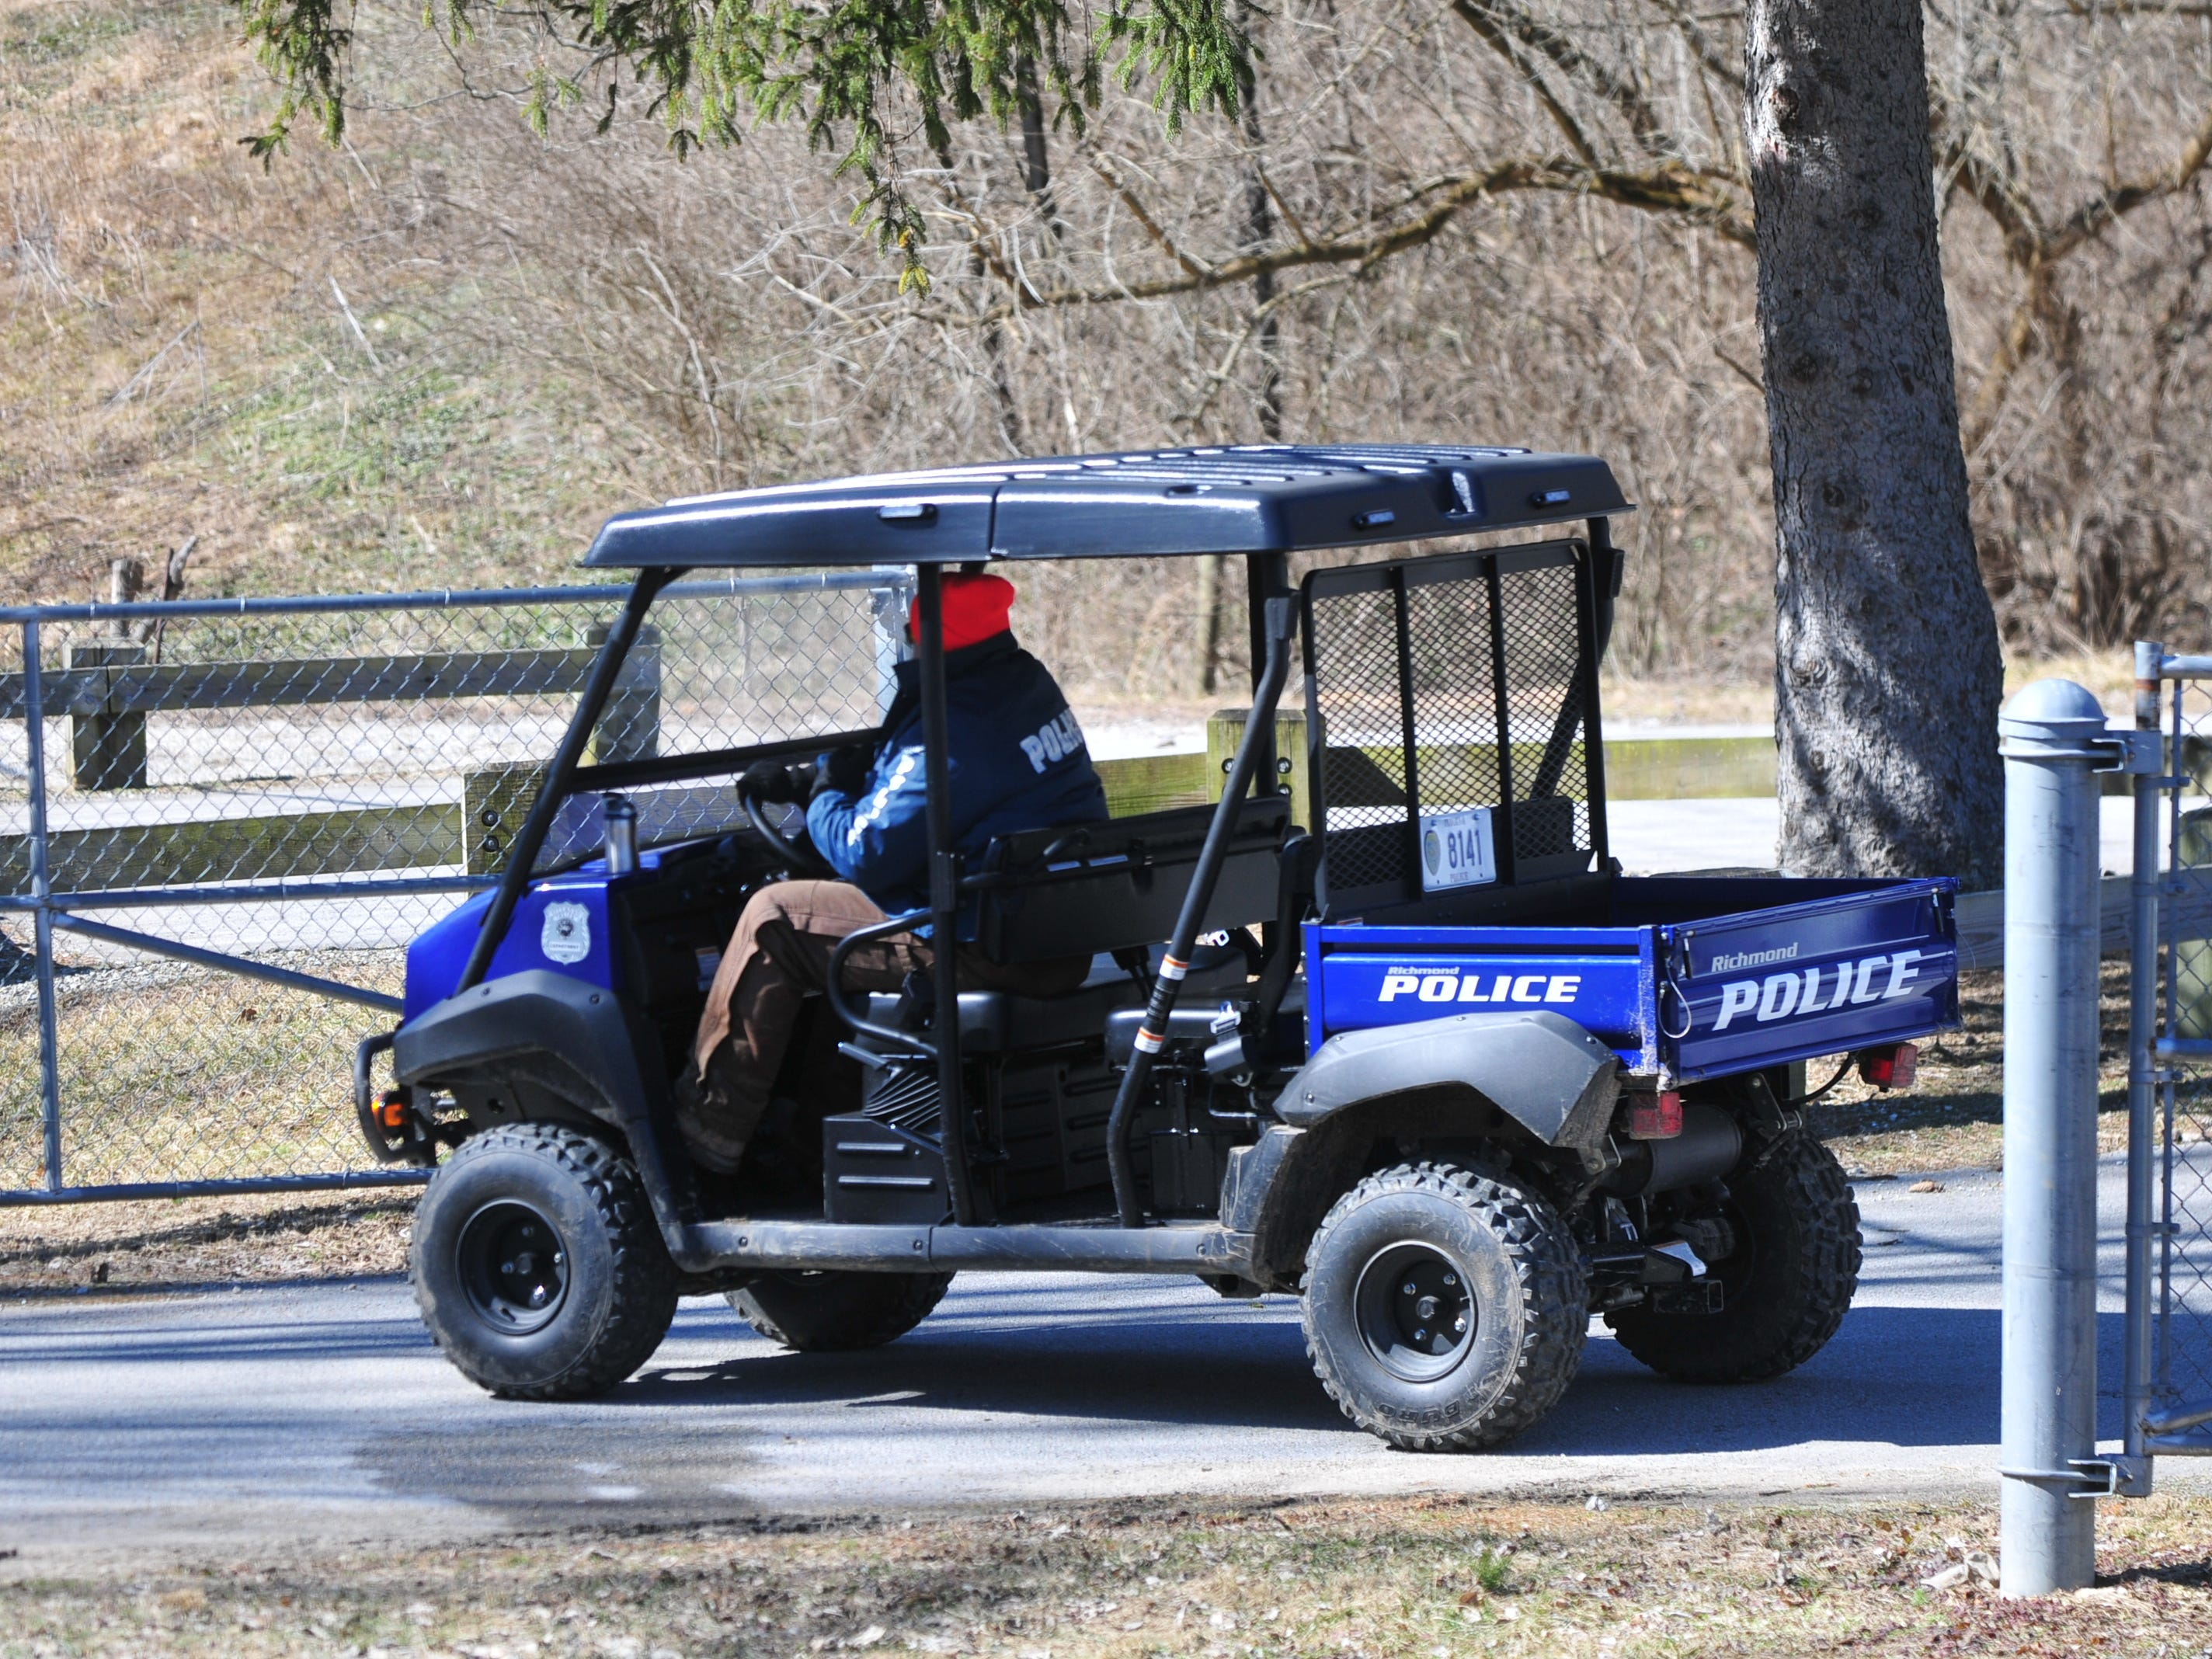 Richmond Police Department used an ATV to transport officers at the Test Road trail head Monday afternoon during the search for Jake Huntington.